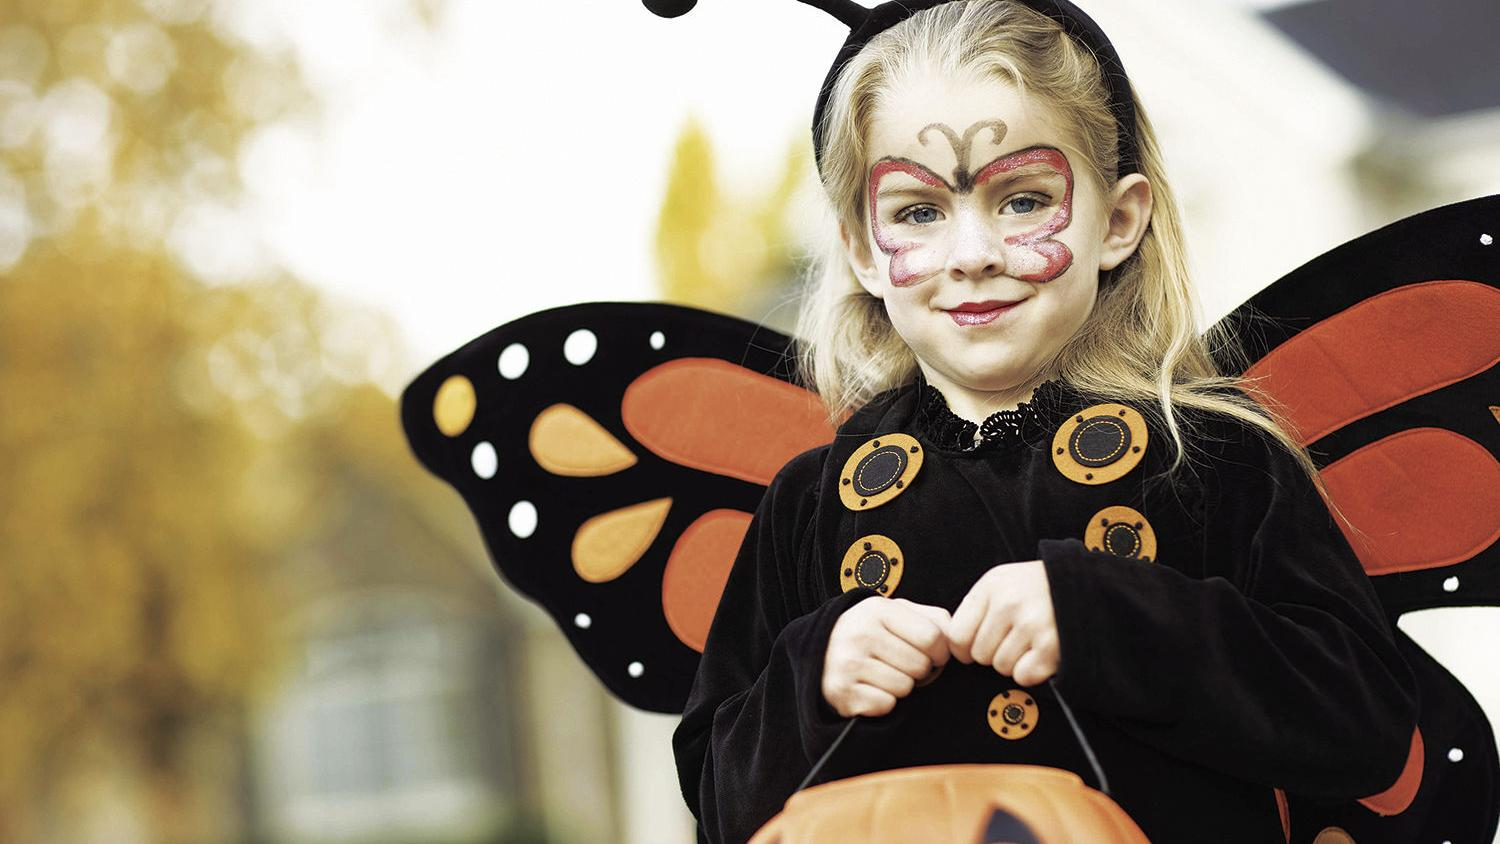 From The Star's Mailbag: Cancel Halloween trick-or-treating